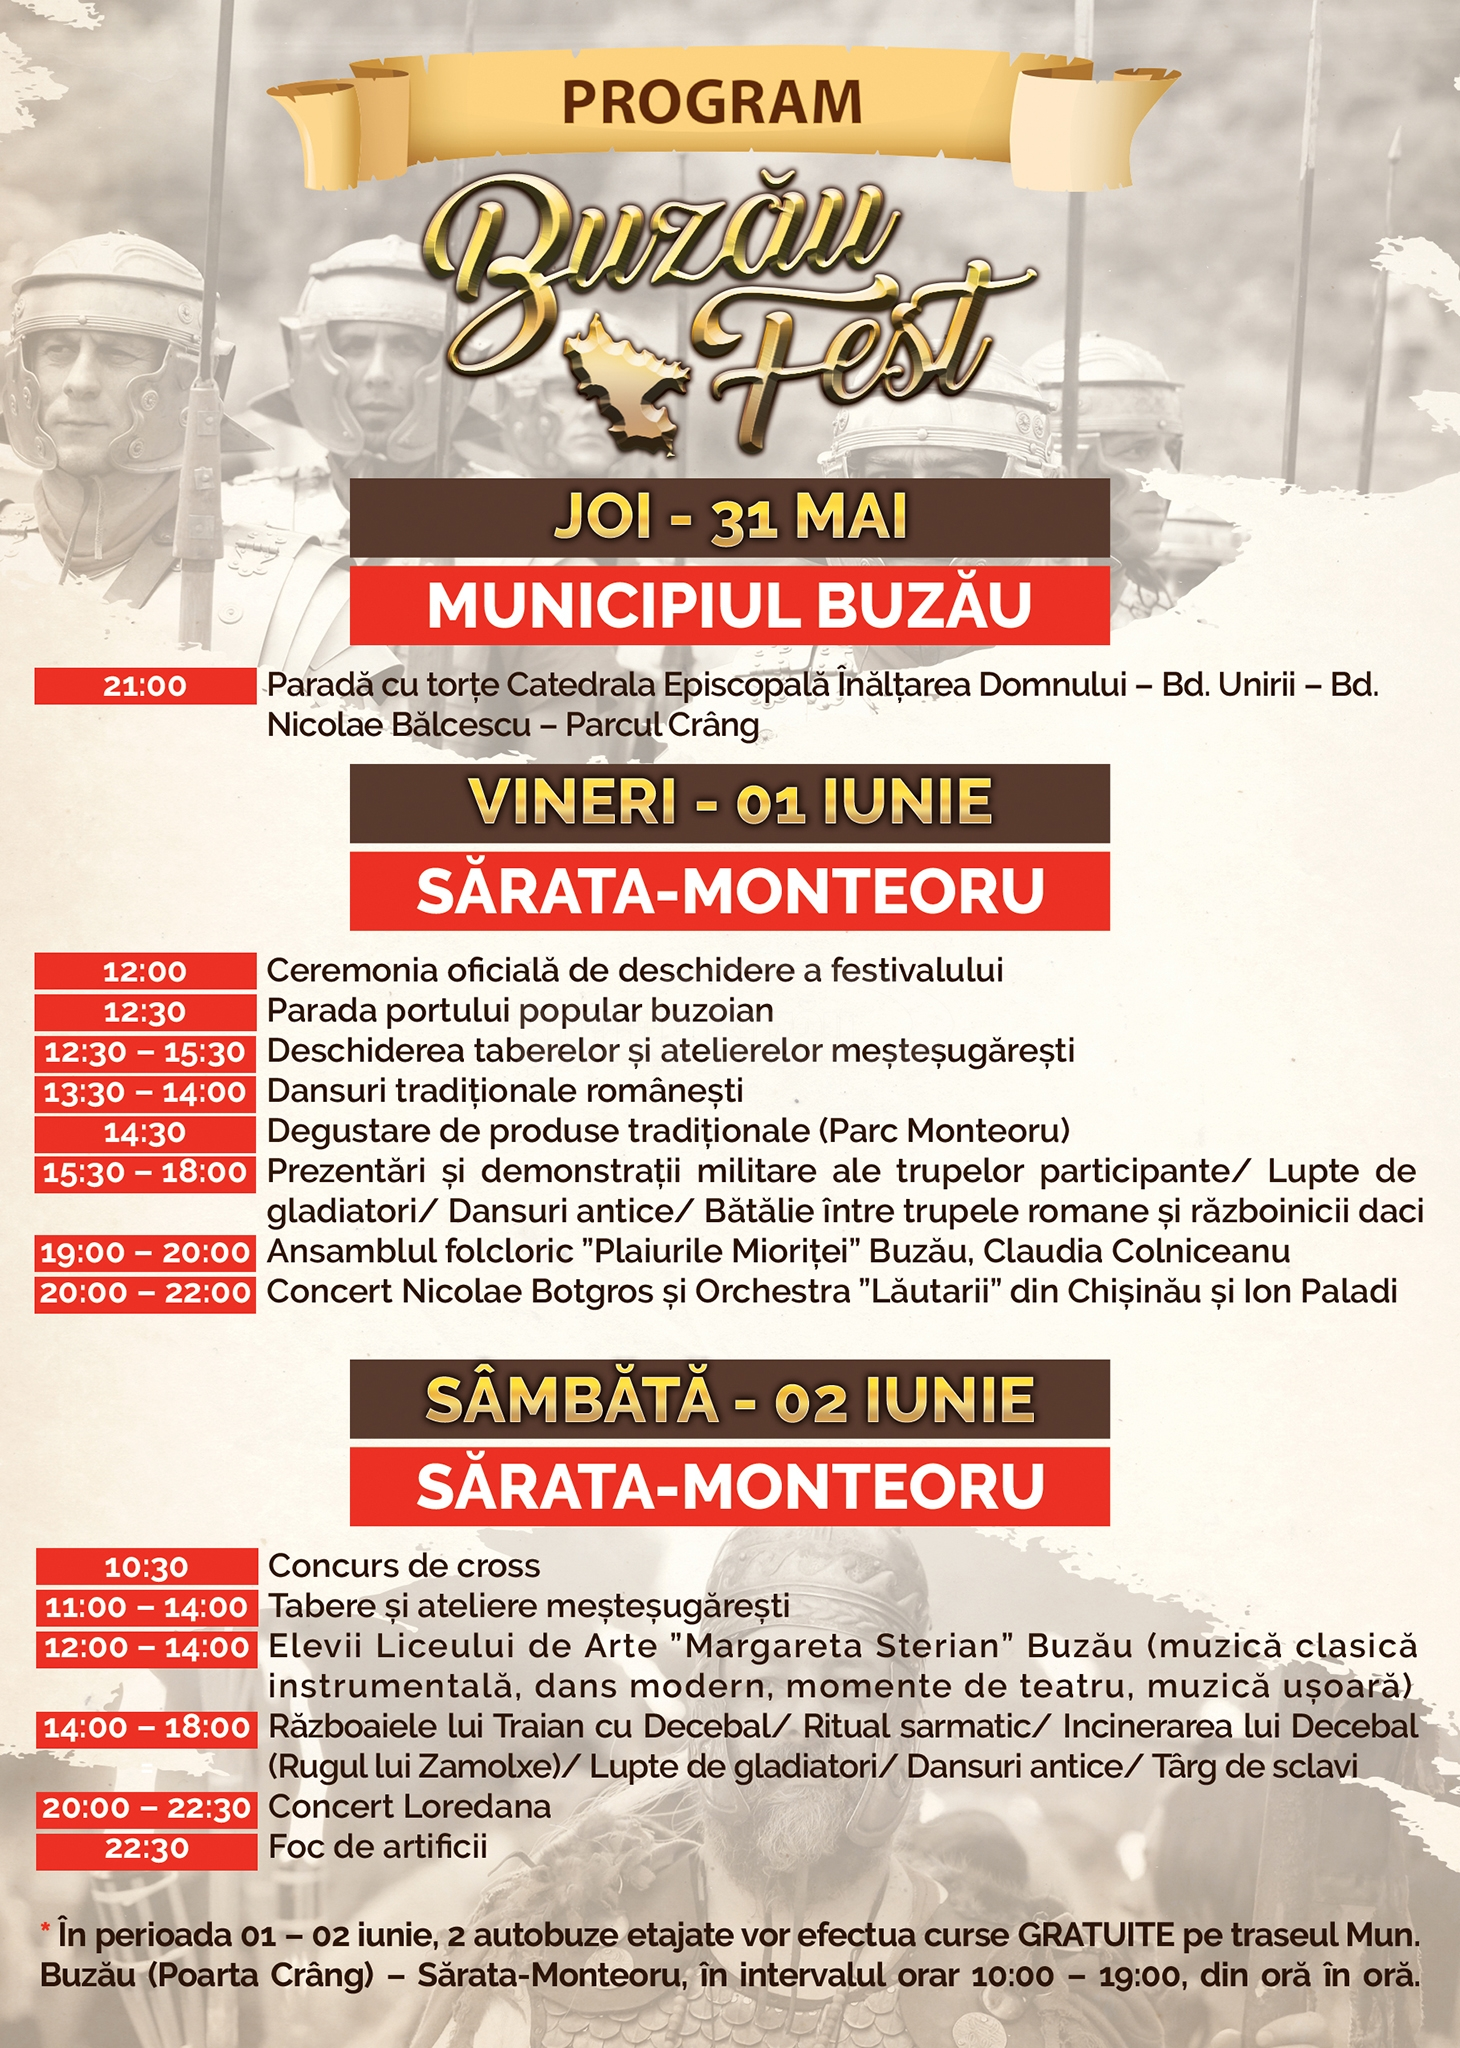 Buzau Fest Flyer Program Online